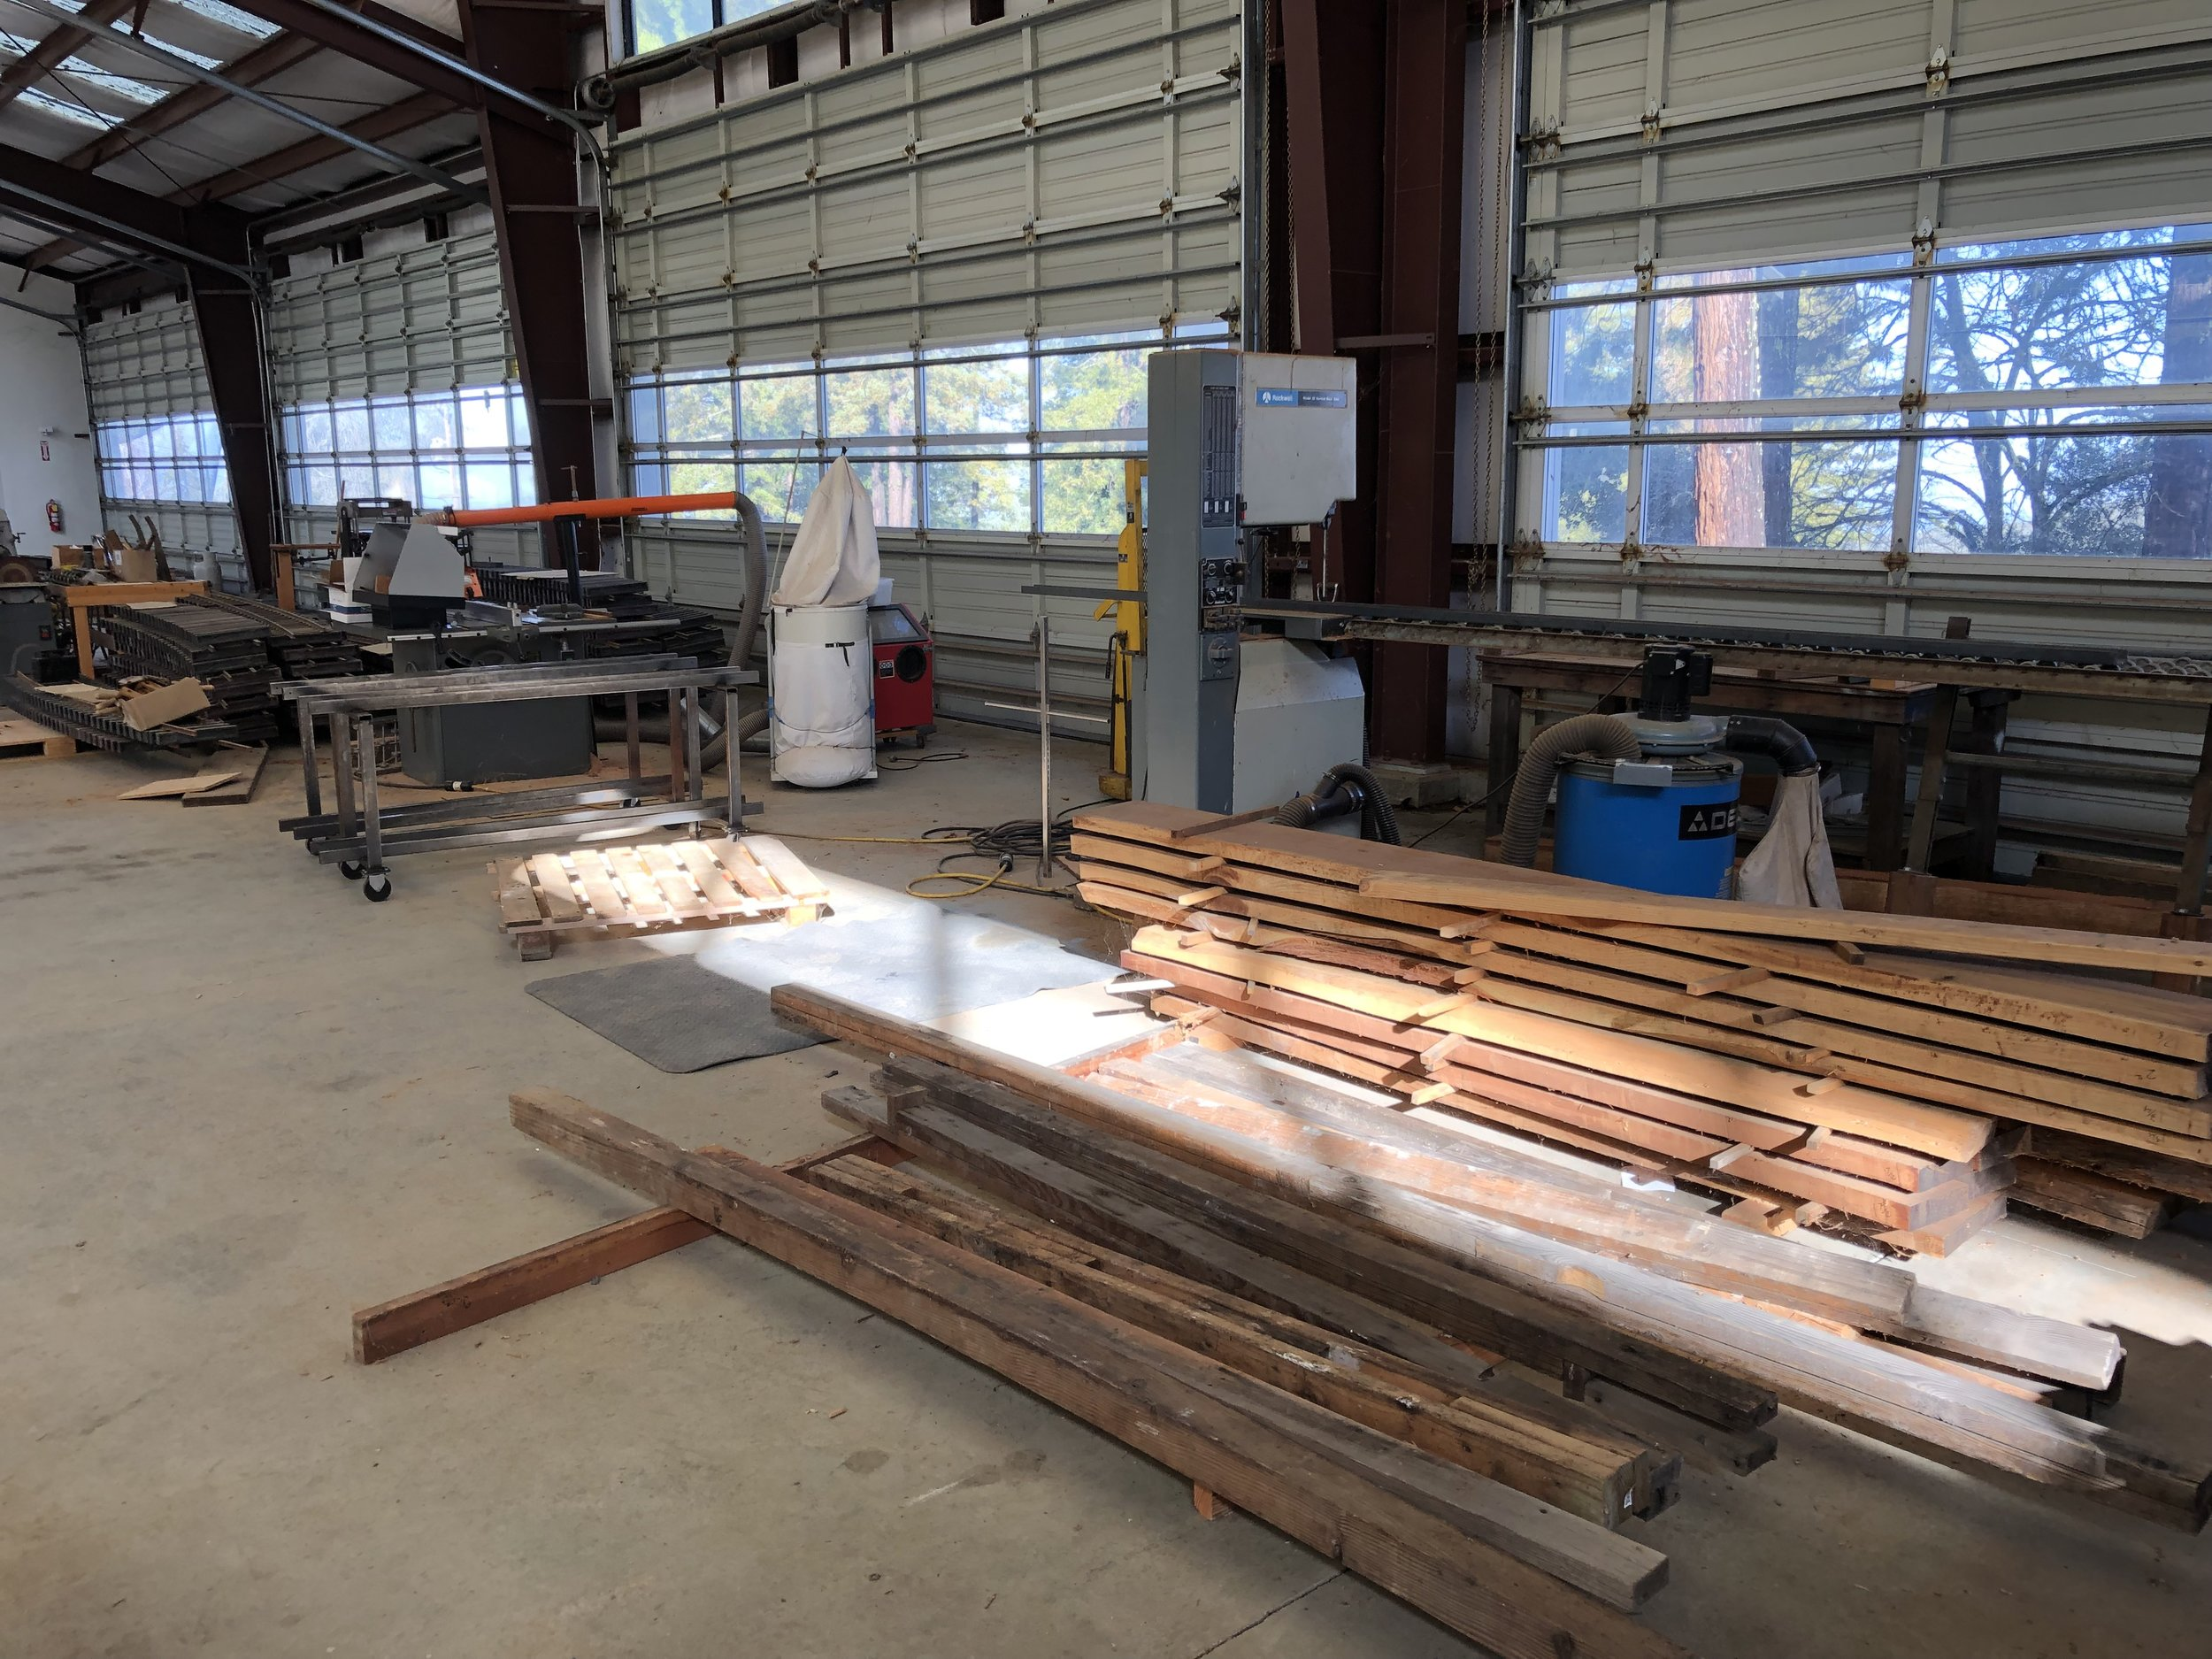 Wood fabrication with drying redwood slabs